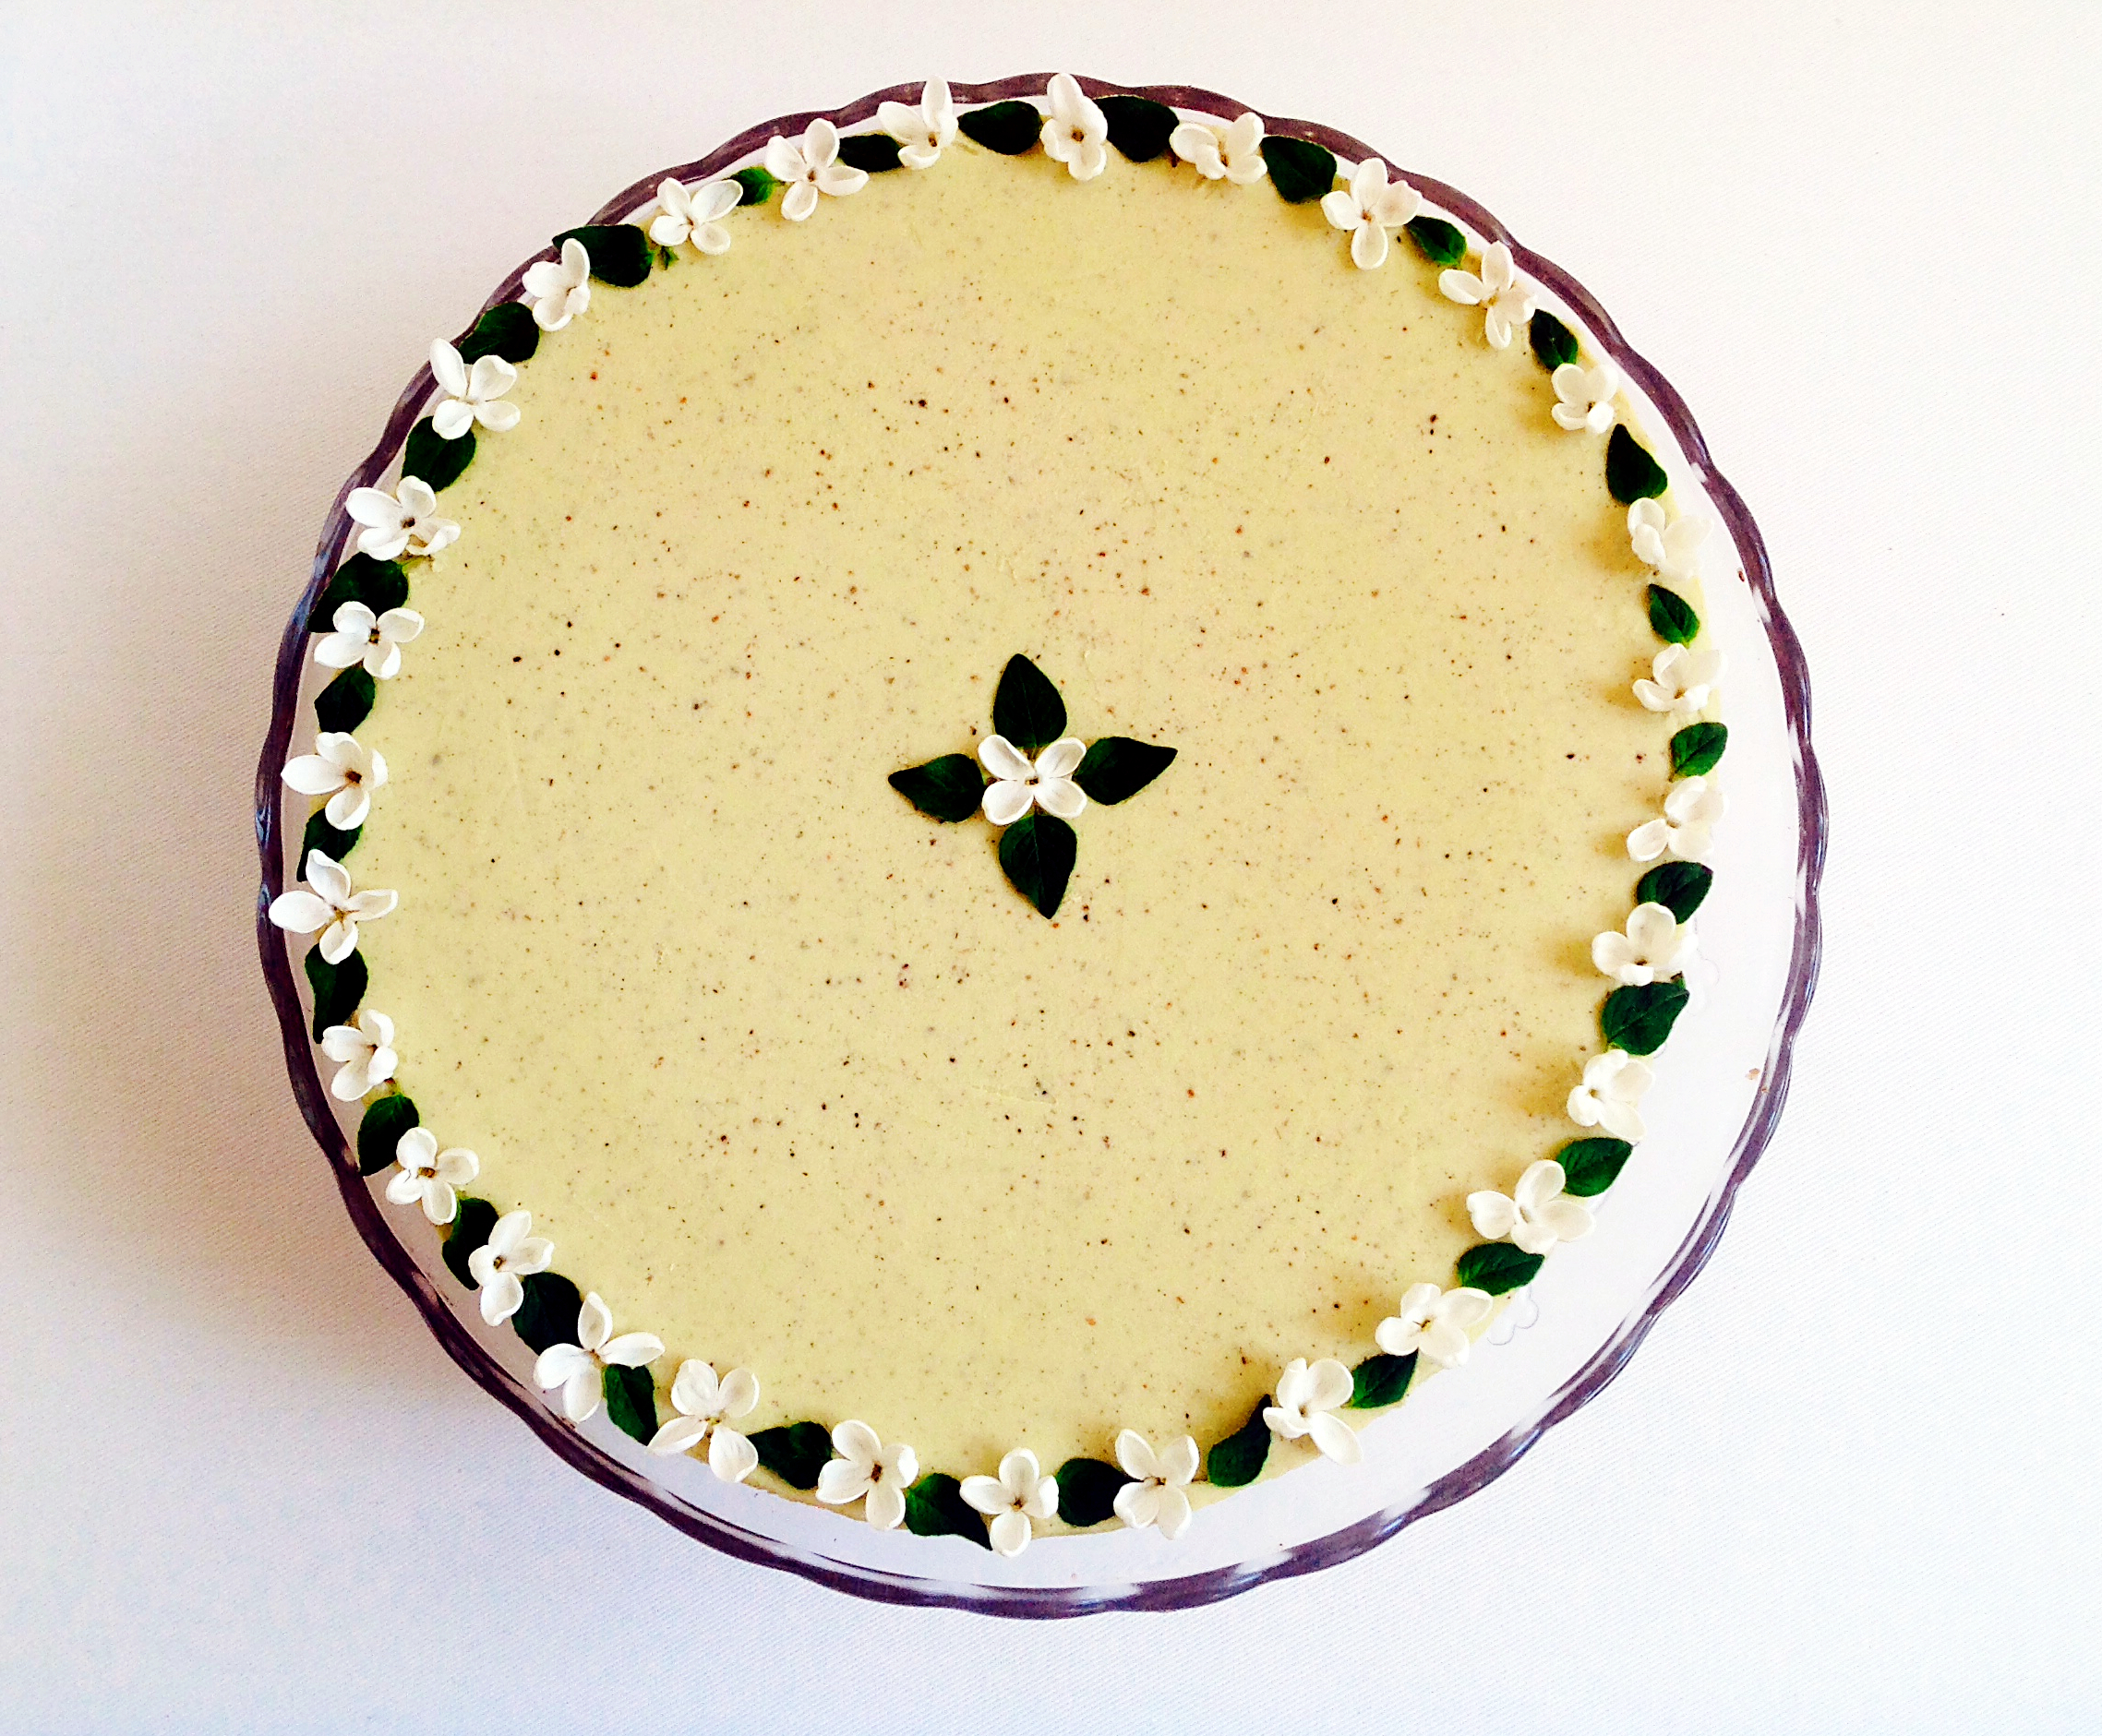 """I'm awakening"" raw key lime pie"